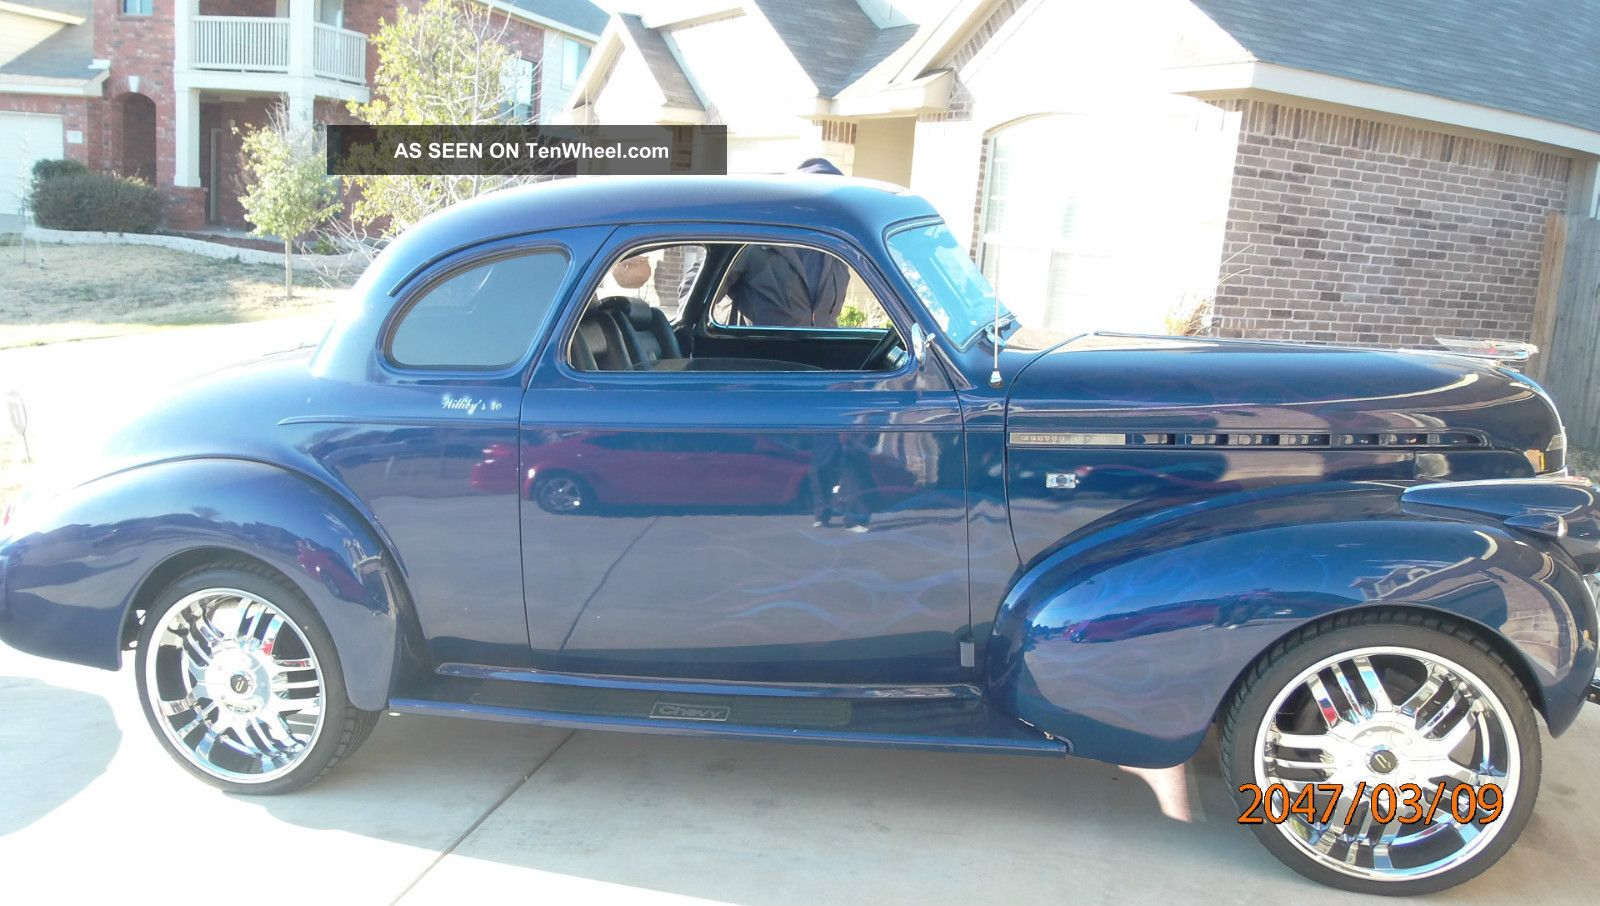 Blue With Ghost Flames On The Side 1940 Chevy Master Deluxe Other photo